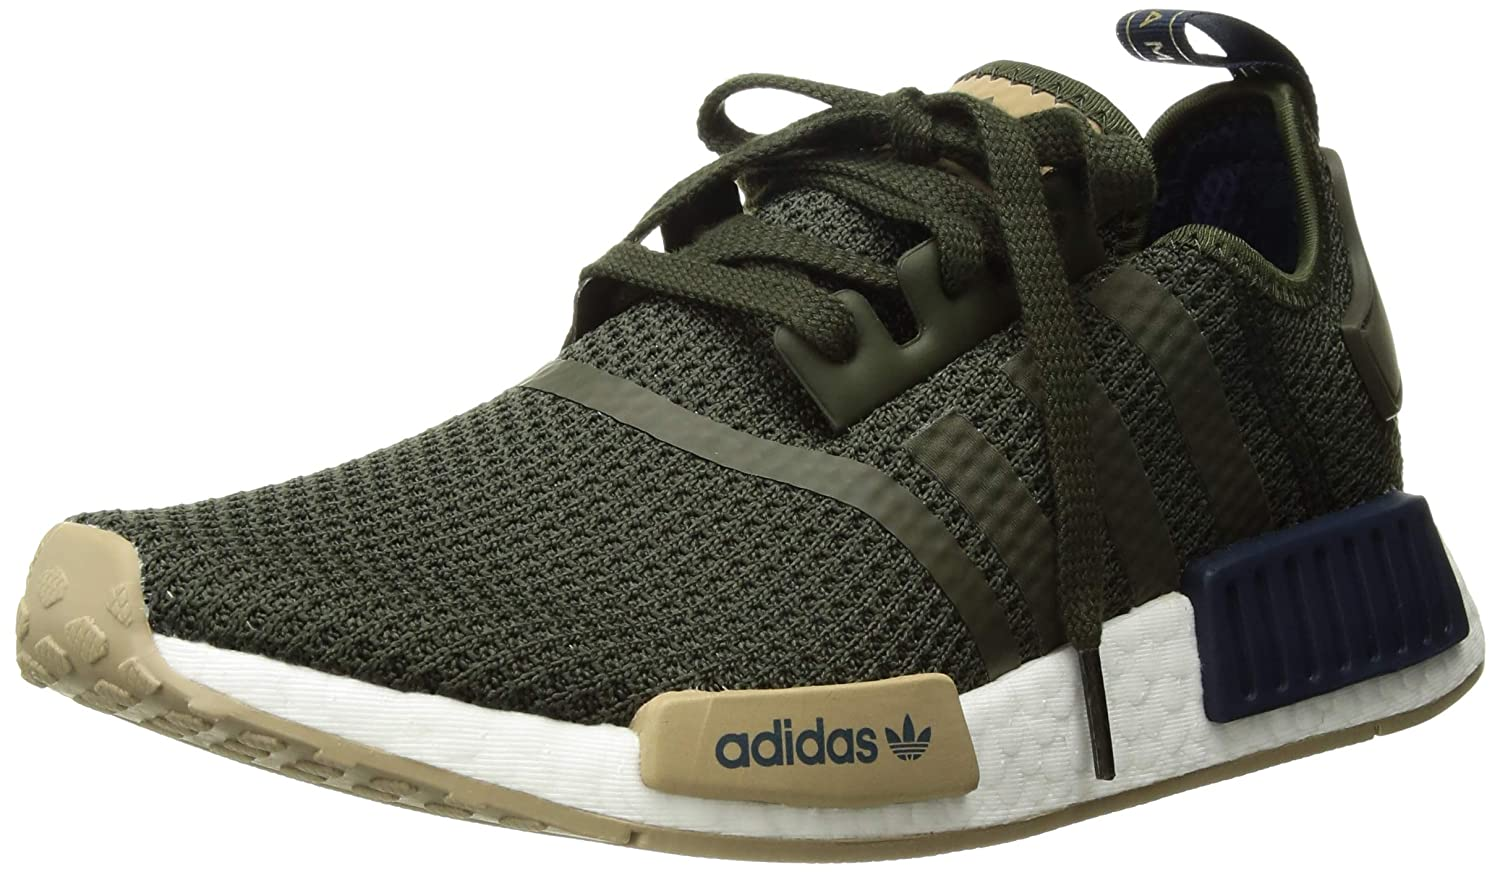 watch 6046a b1e9e Amazon.com   adidas Originals Men s NMD R1, Night Cargo Collegiate  Navy Hemp 7.5 M US   Shoes